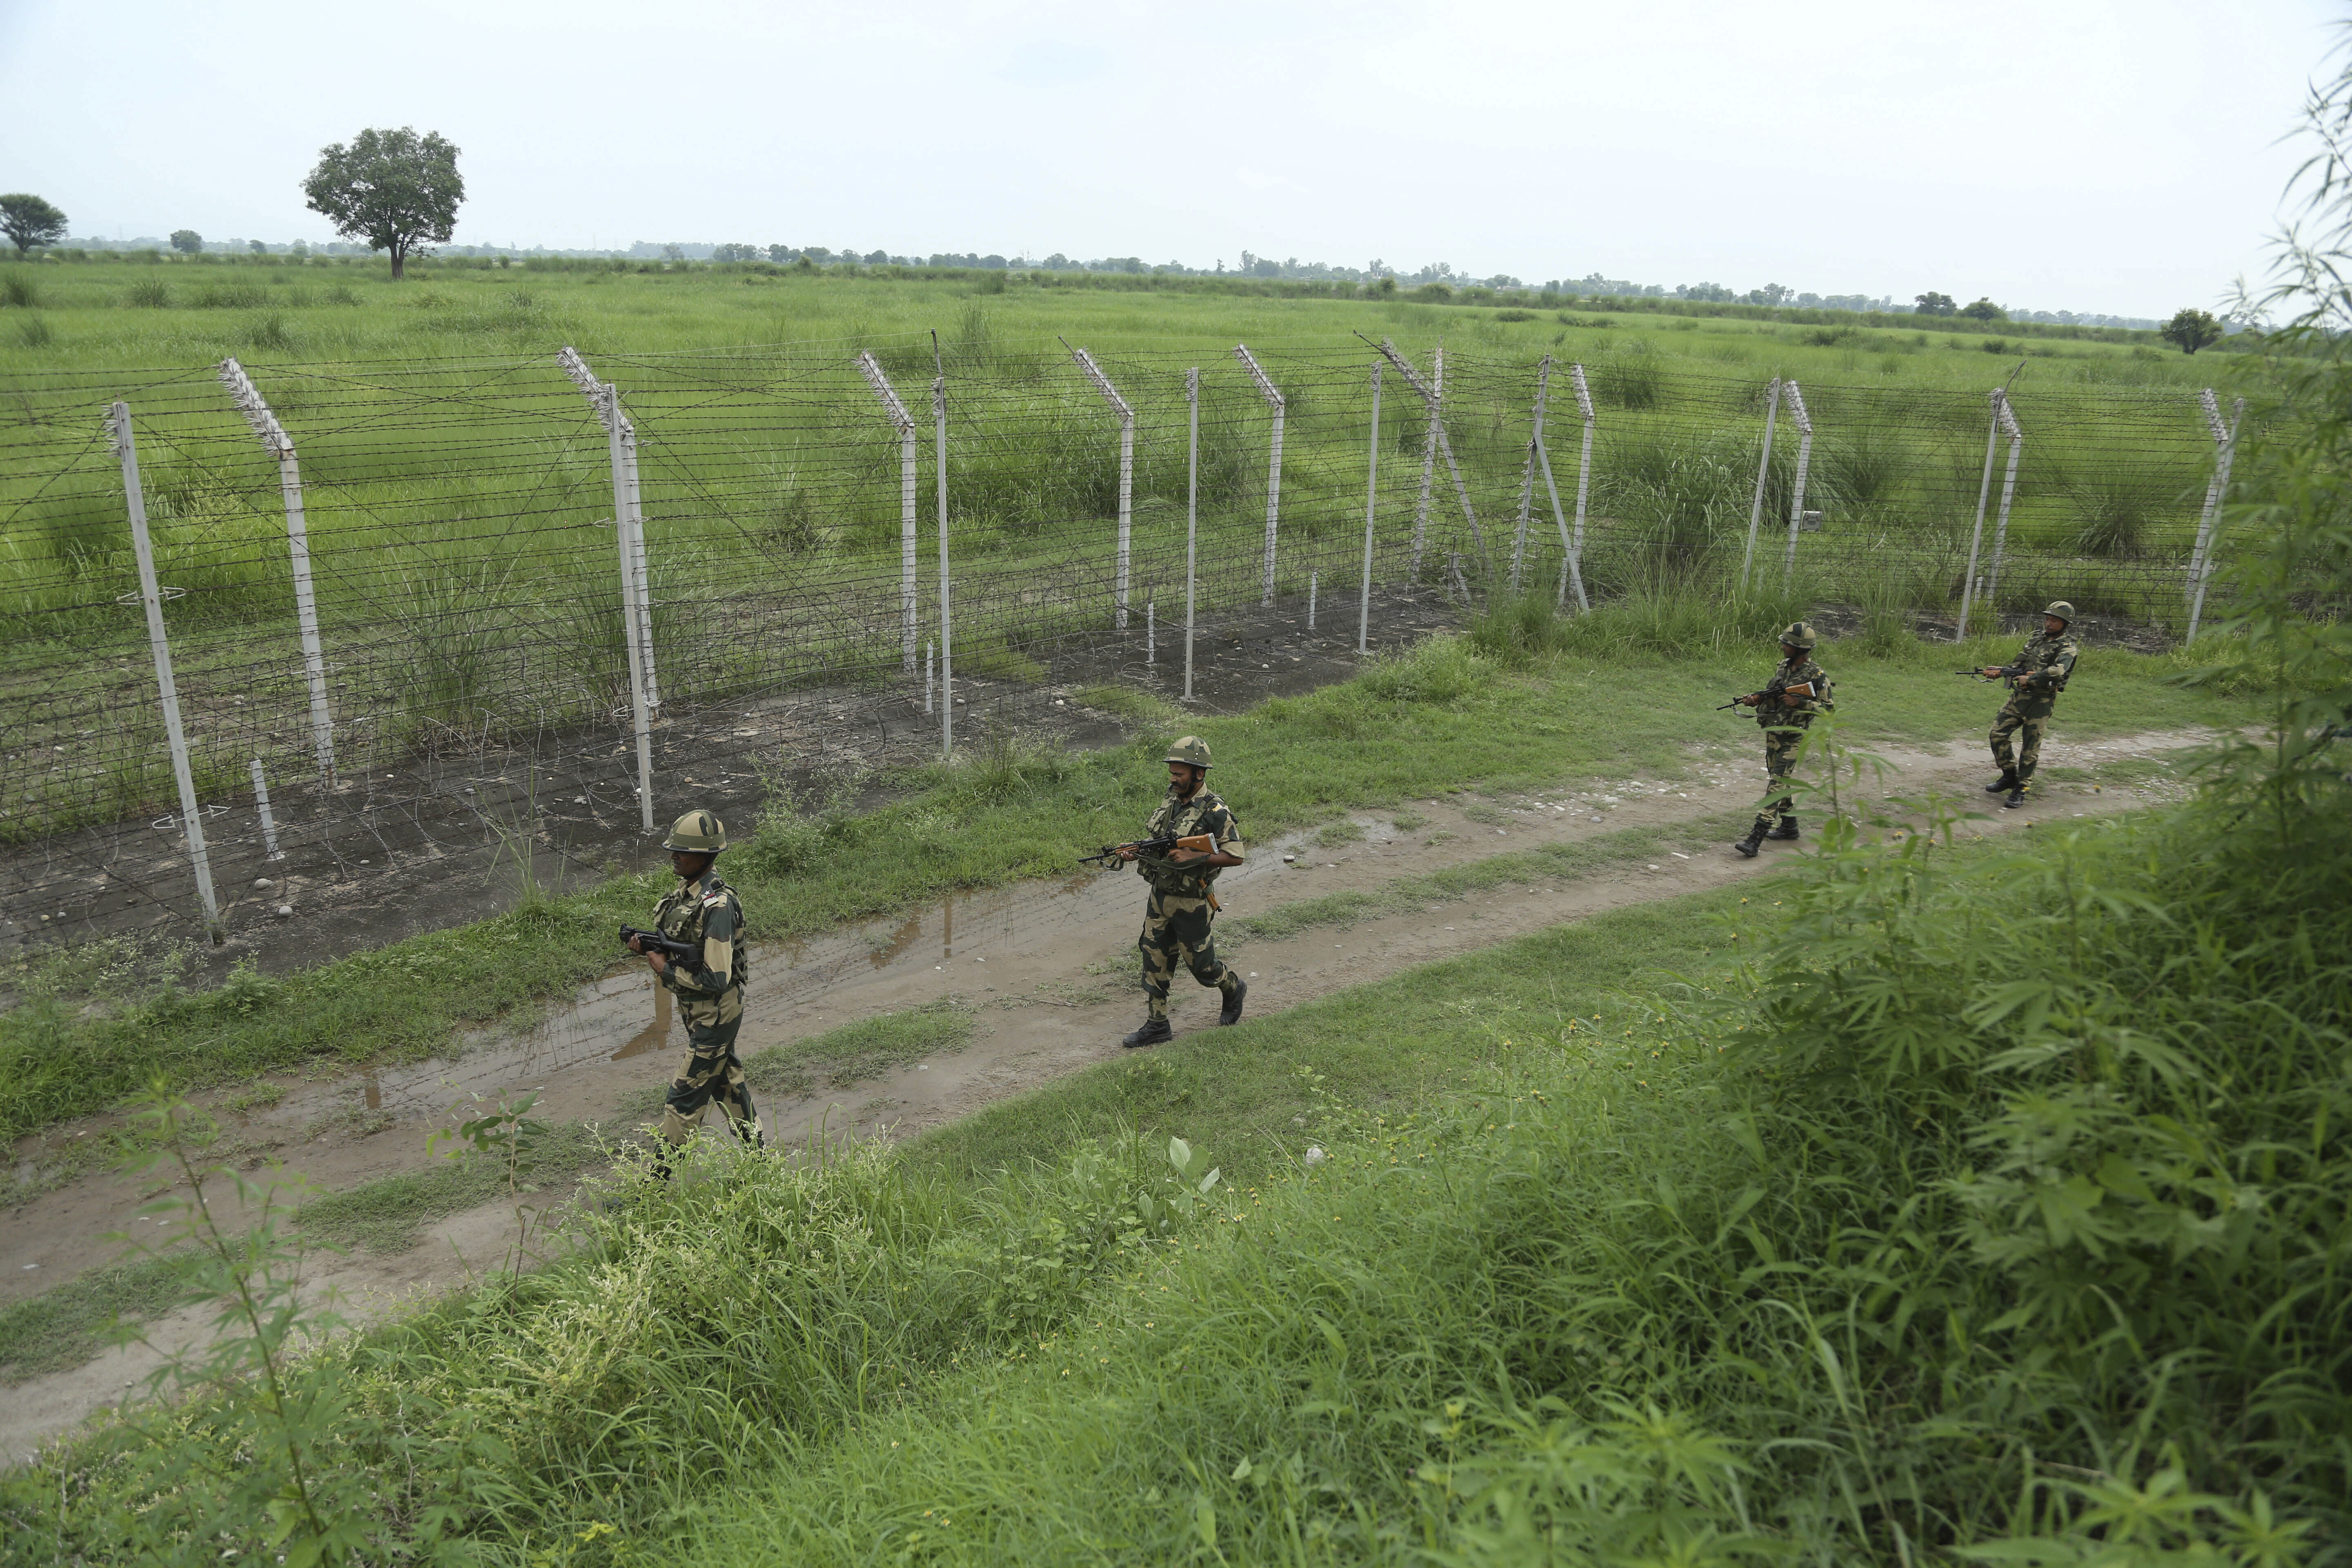 India's Border Security Force (BSF) soldiers patrol near the India Pakistan border fencing at Garkhal in Akhnoor, about 35 kilometers (22 miles) west of Jammu, India, Tuesday, Aug.13, 2019. Pakistan has denounced India's actions to change the special status of the disputed Himalayan region of Kashmir and has downgraded its diplomatic ties with New Delhi. (AP Photo/Channi Anand)